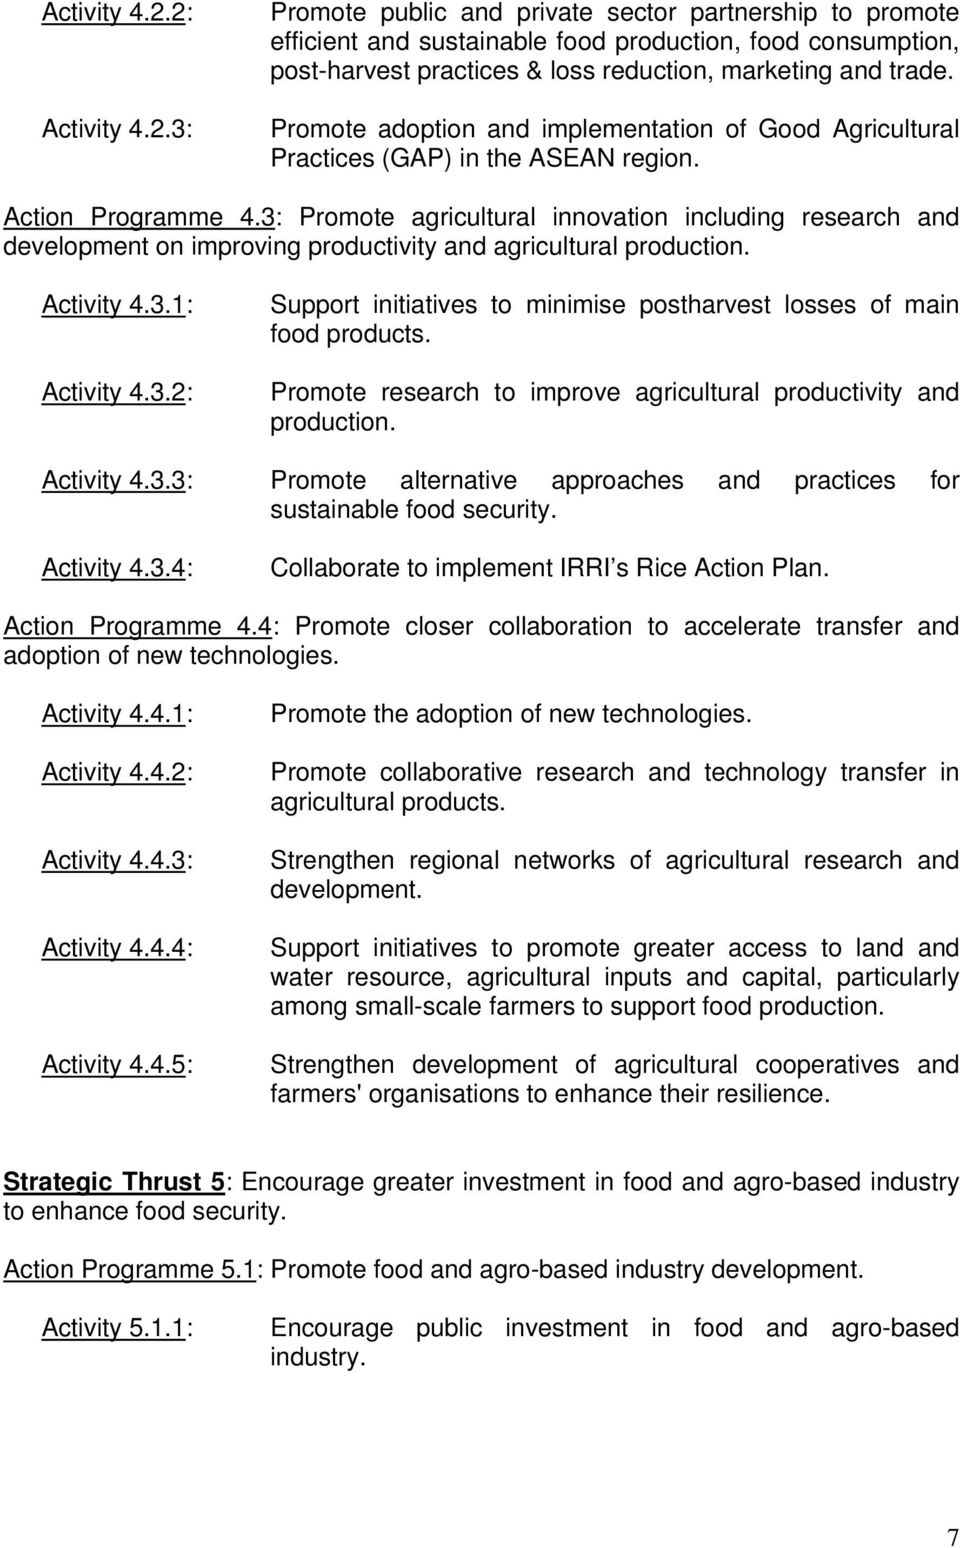 3: Promote agricultural innovation including research and development on improving productivity and agricultural production. Activity 4.3.1: Activity 4.3.2: Support initiatives to minimise postharvest losses of main food products.